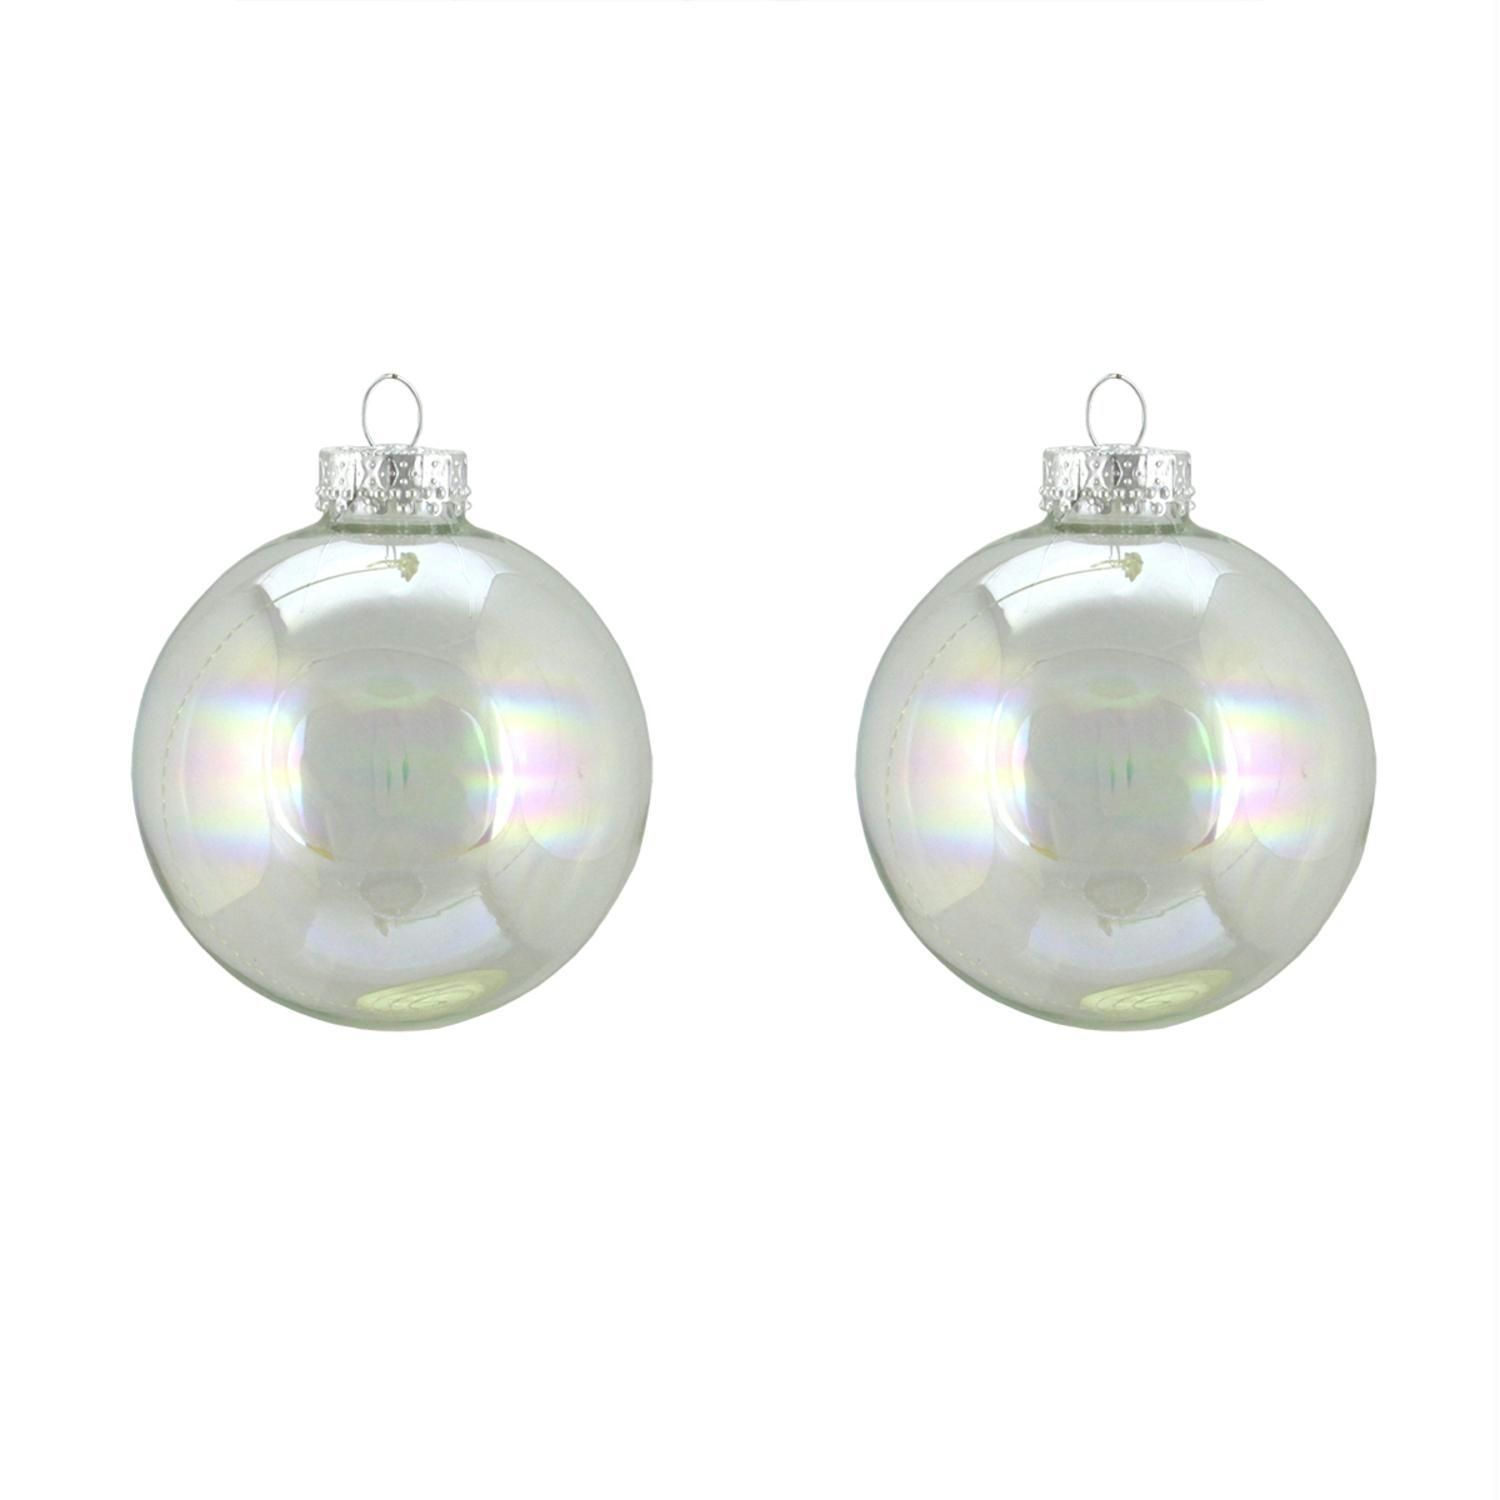 2Ct Clear Iridescent Glass Ball Christmas Ornaments 4 (100Mm)